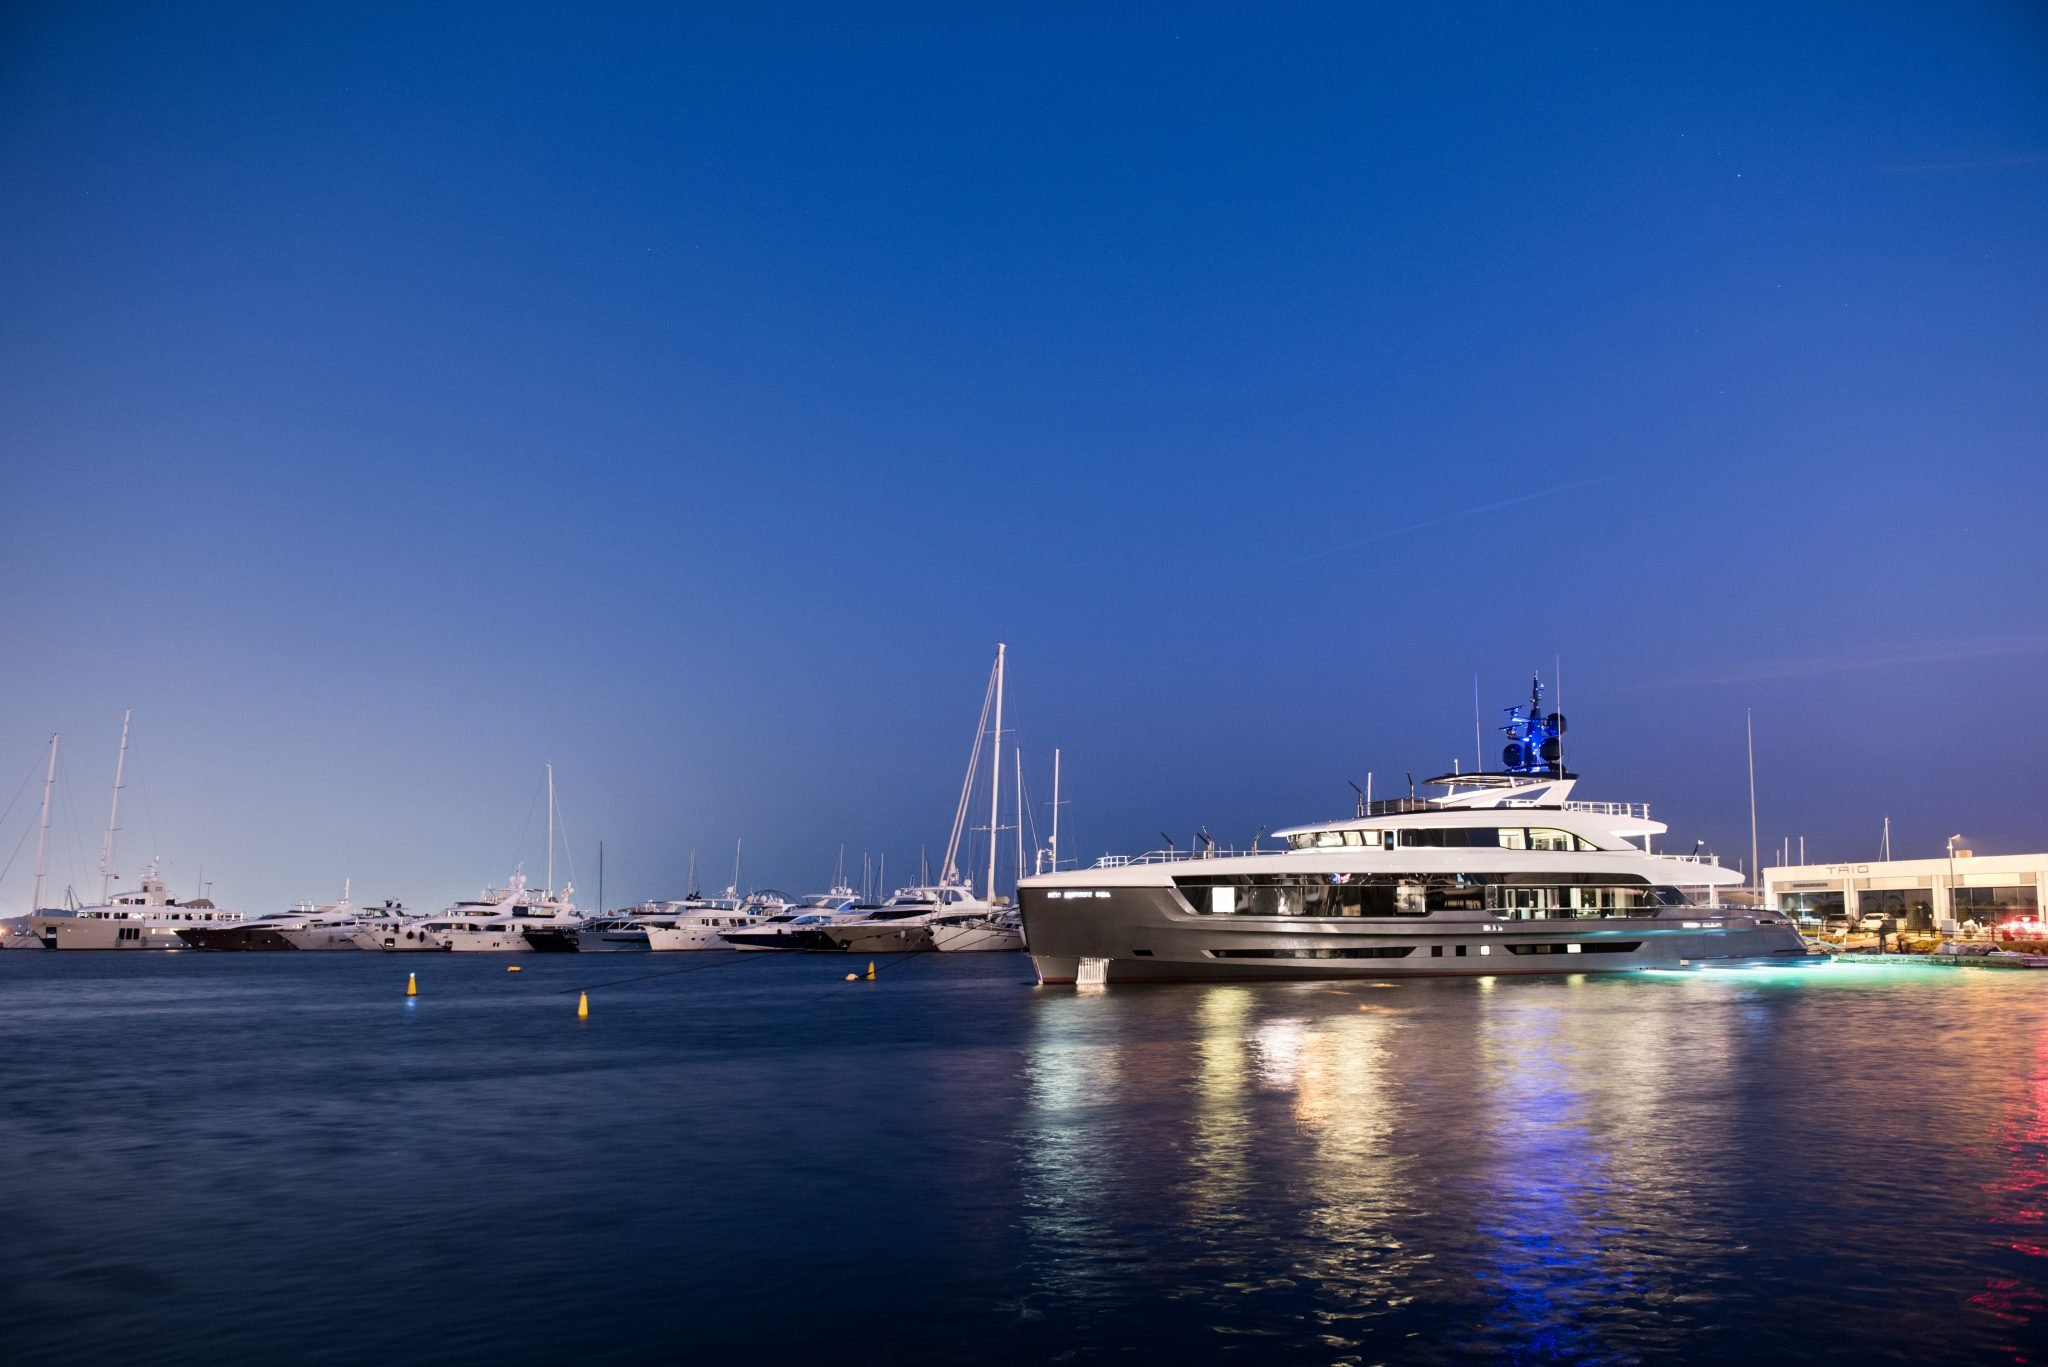 Virtus 44m superyacht at night